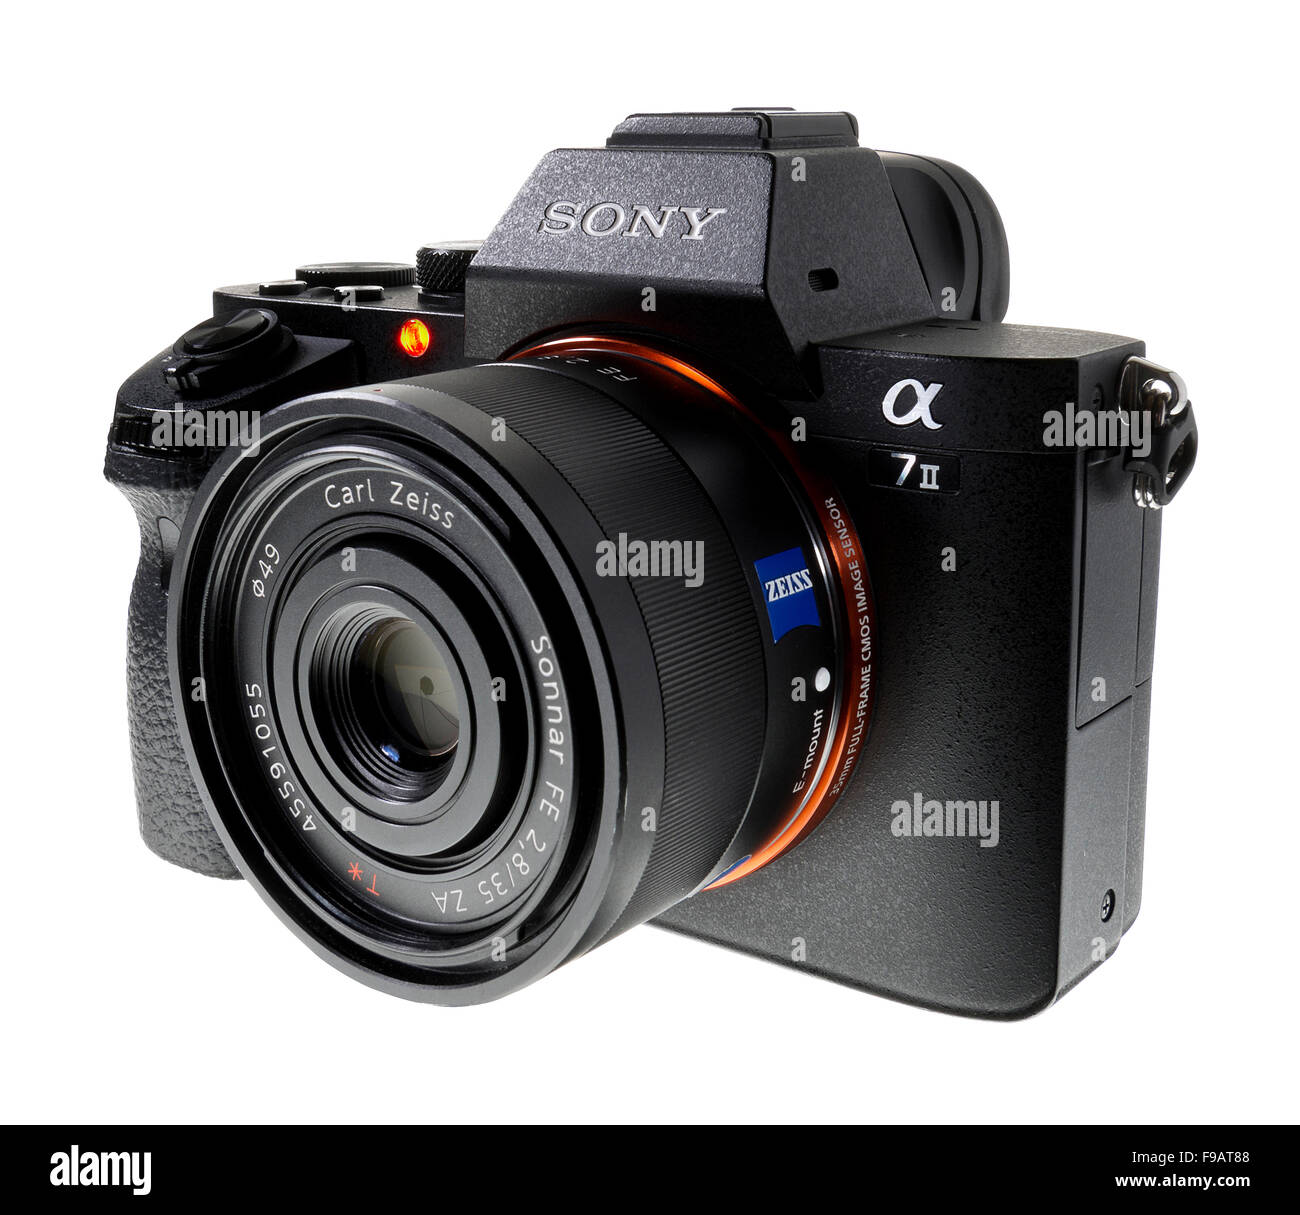 Sony Alpha 7 II digital SLR camera with Carl Zeiss lens. - Stock Image